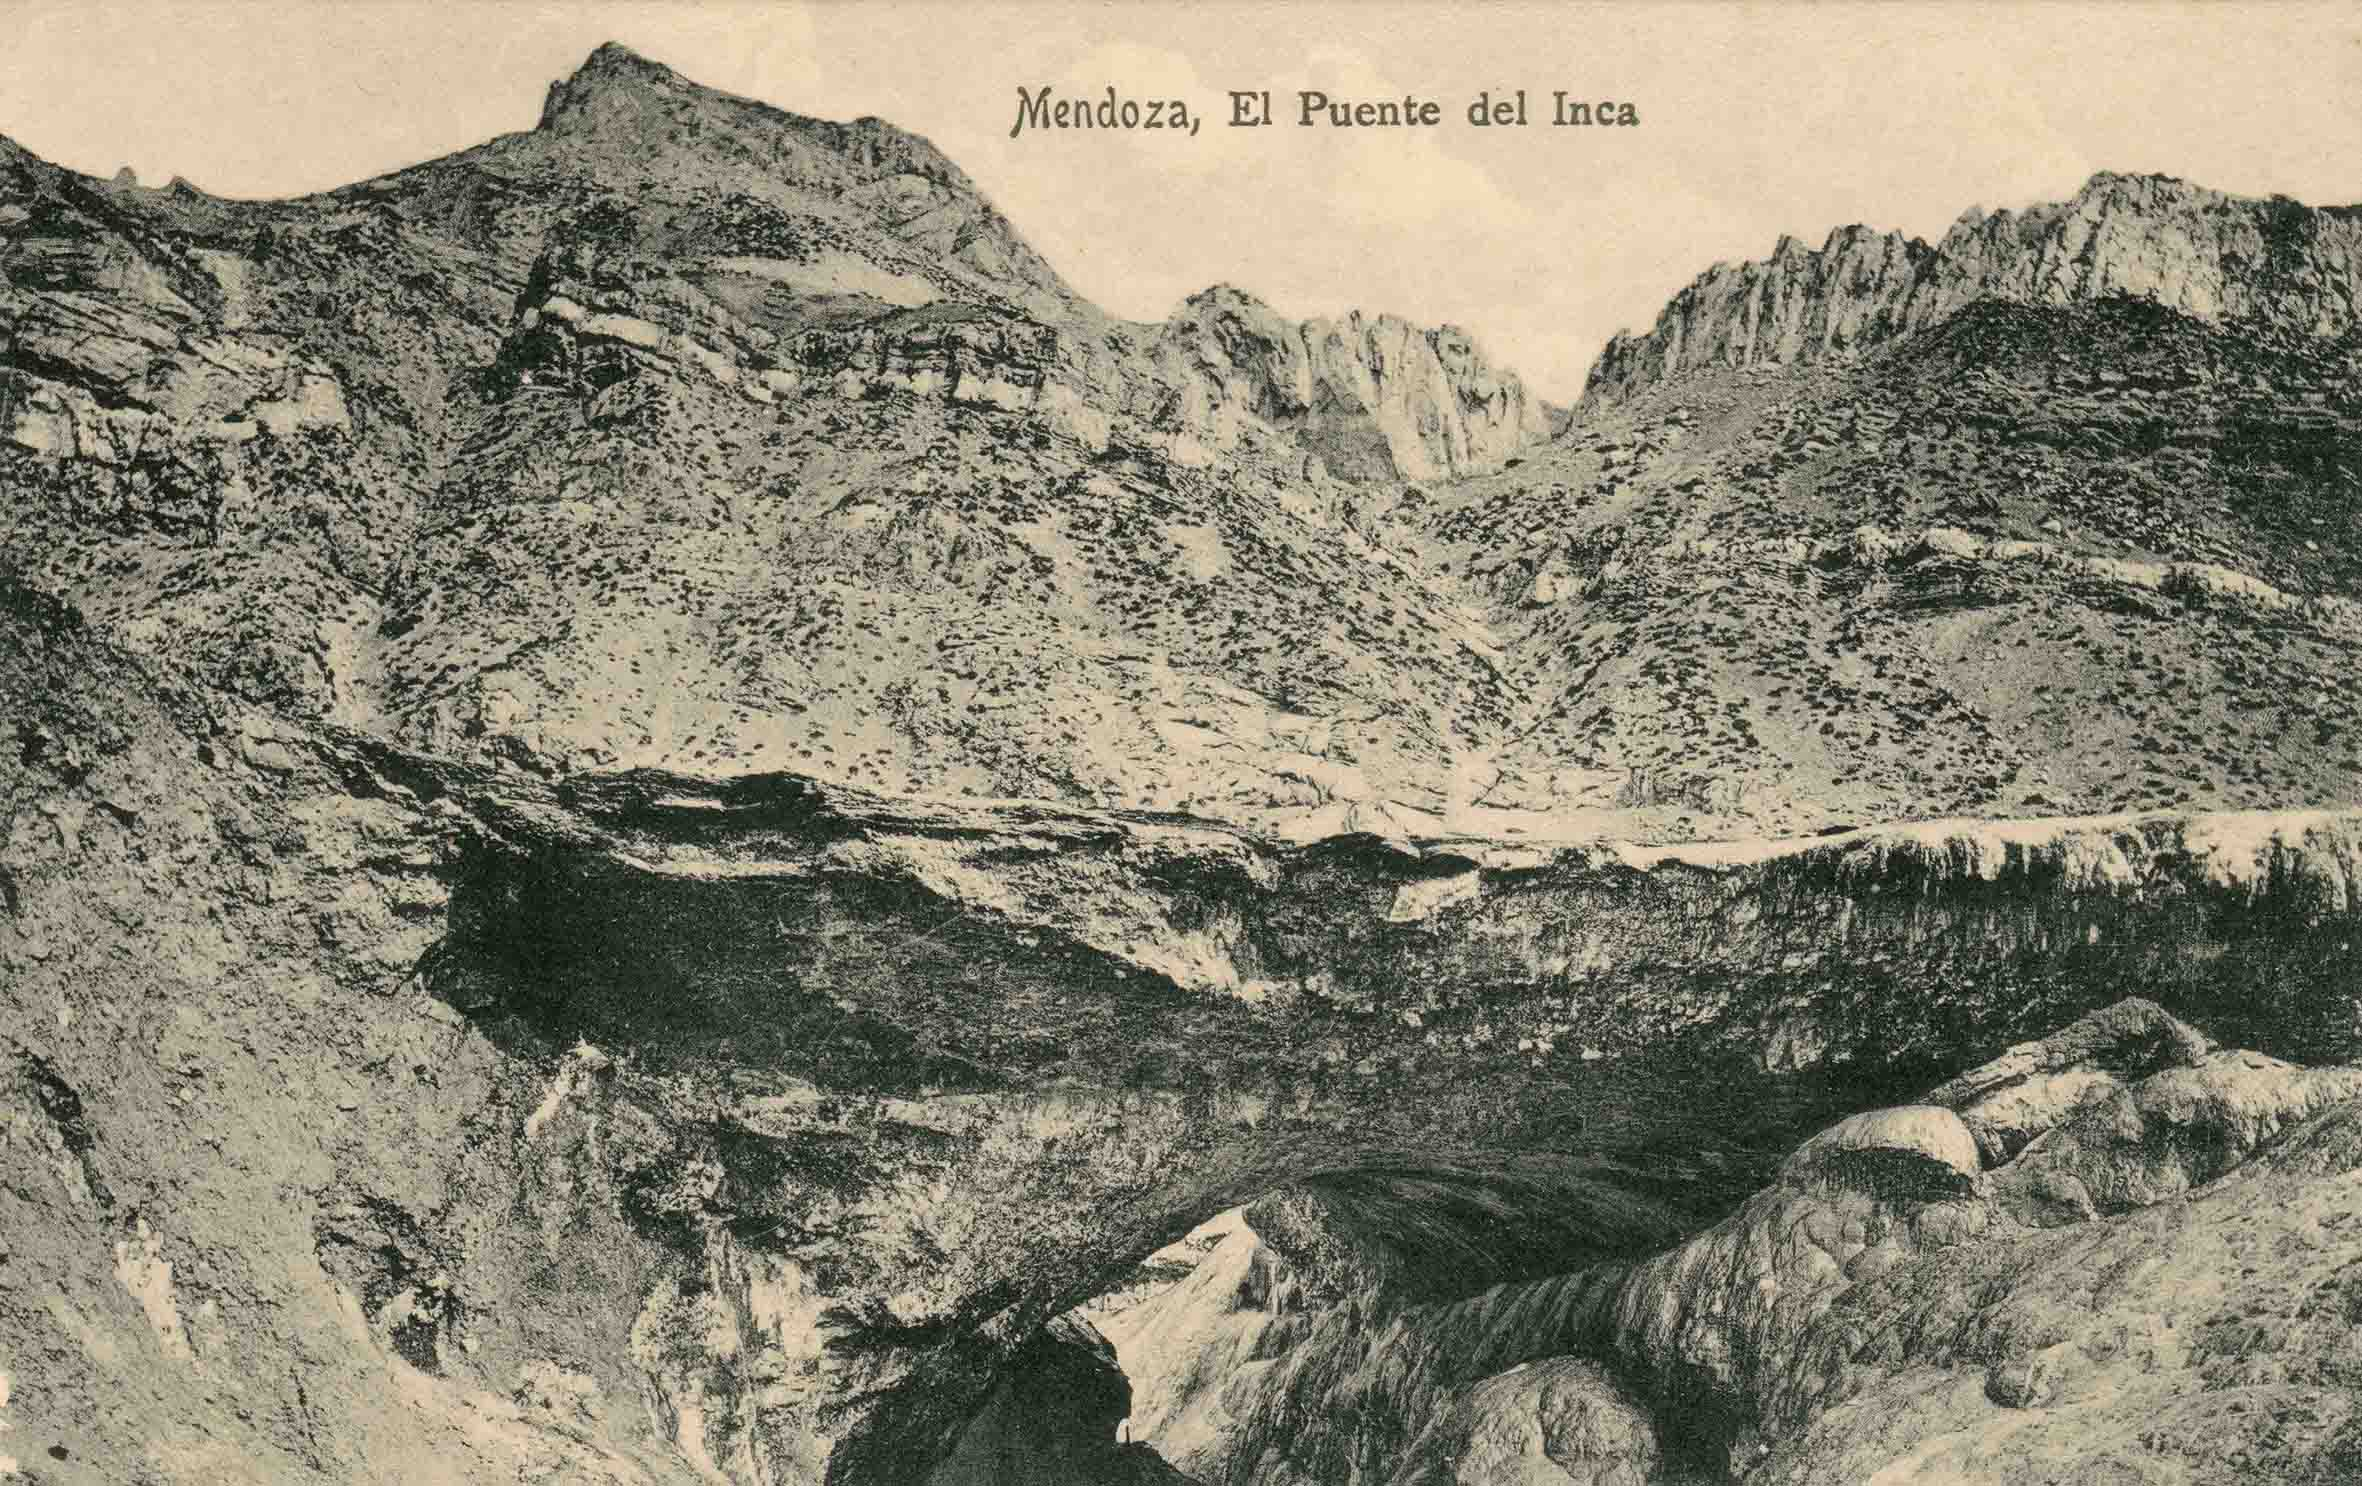 Enterreno - Fotos históricas de chile - fotos antiguas de Chile - Puente del Inca ca. 1915